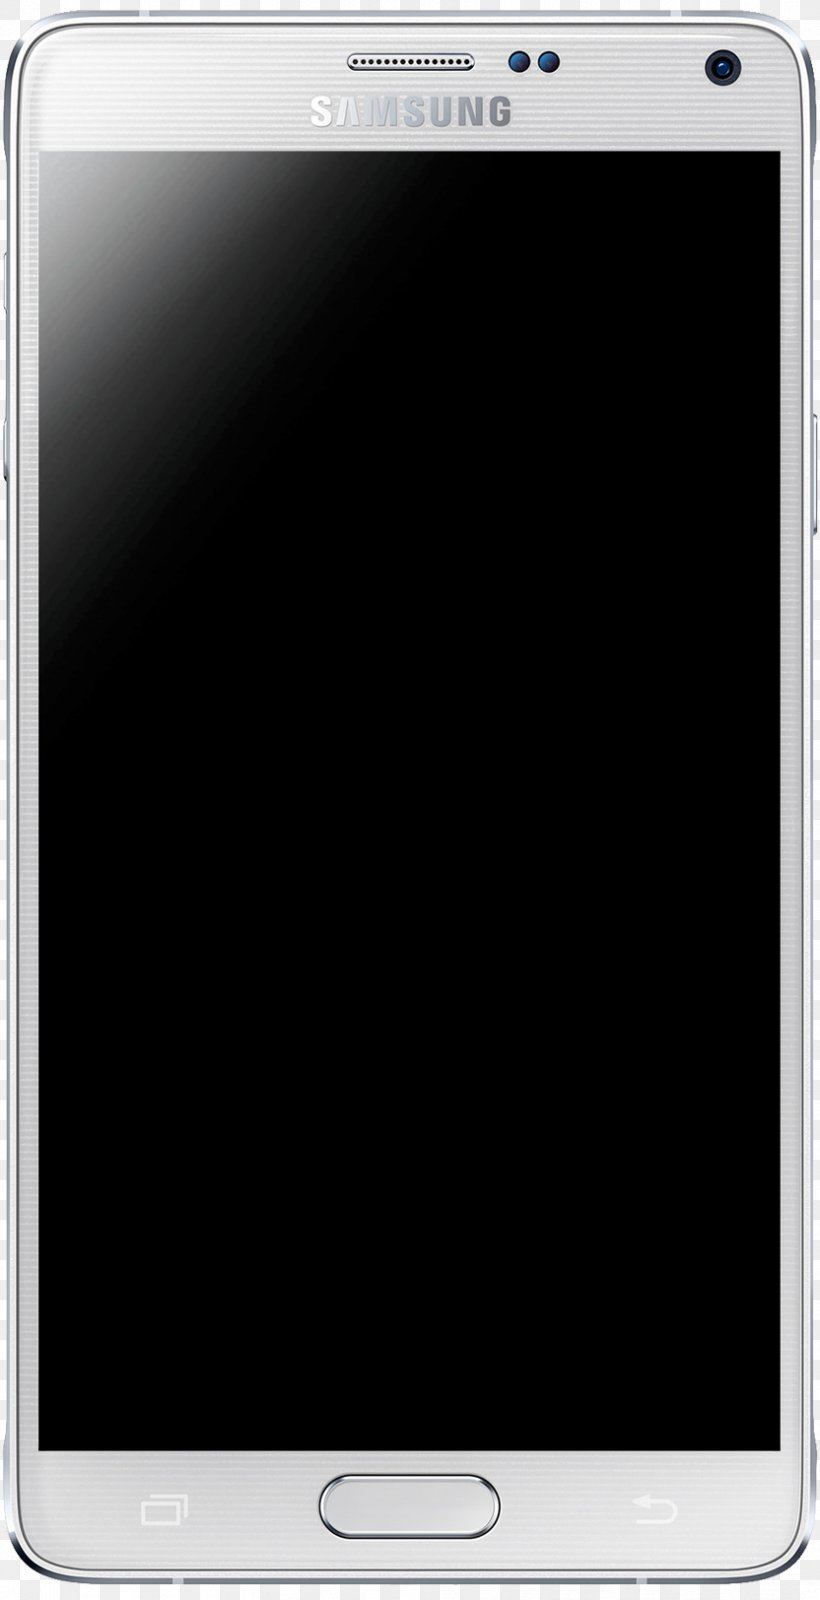 Samsung Galaxy Note 5 Samsung Galaxy Note 3 Samsung Galaxy Note 4 Internationale Funkausstellung Berlin Smartphone, PNG, 832x1624px, Samsung Galaxy Note 5, Android, Communication Device, Display Device, Electronic Device Download Free